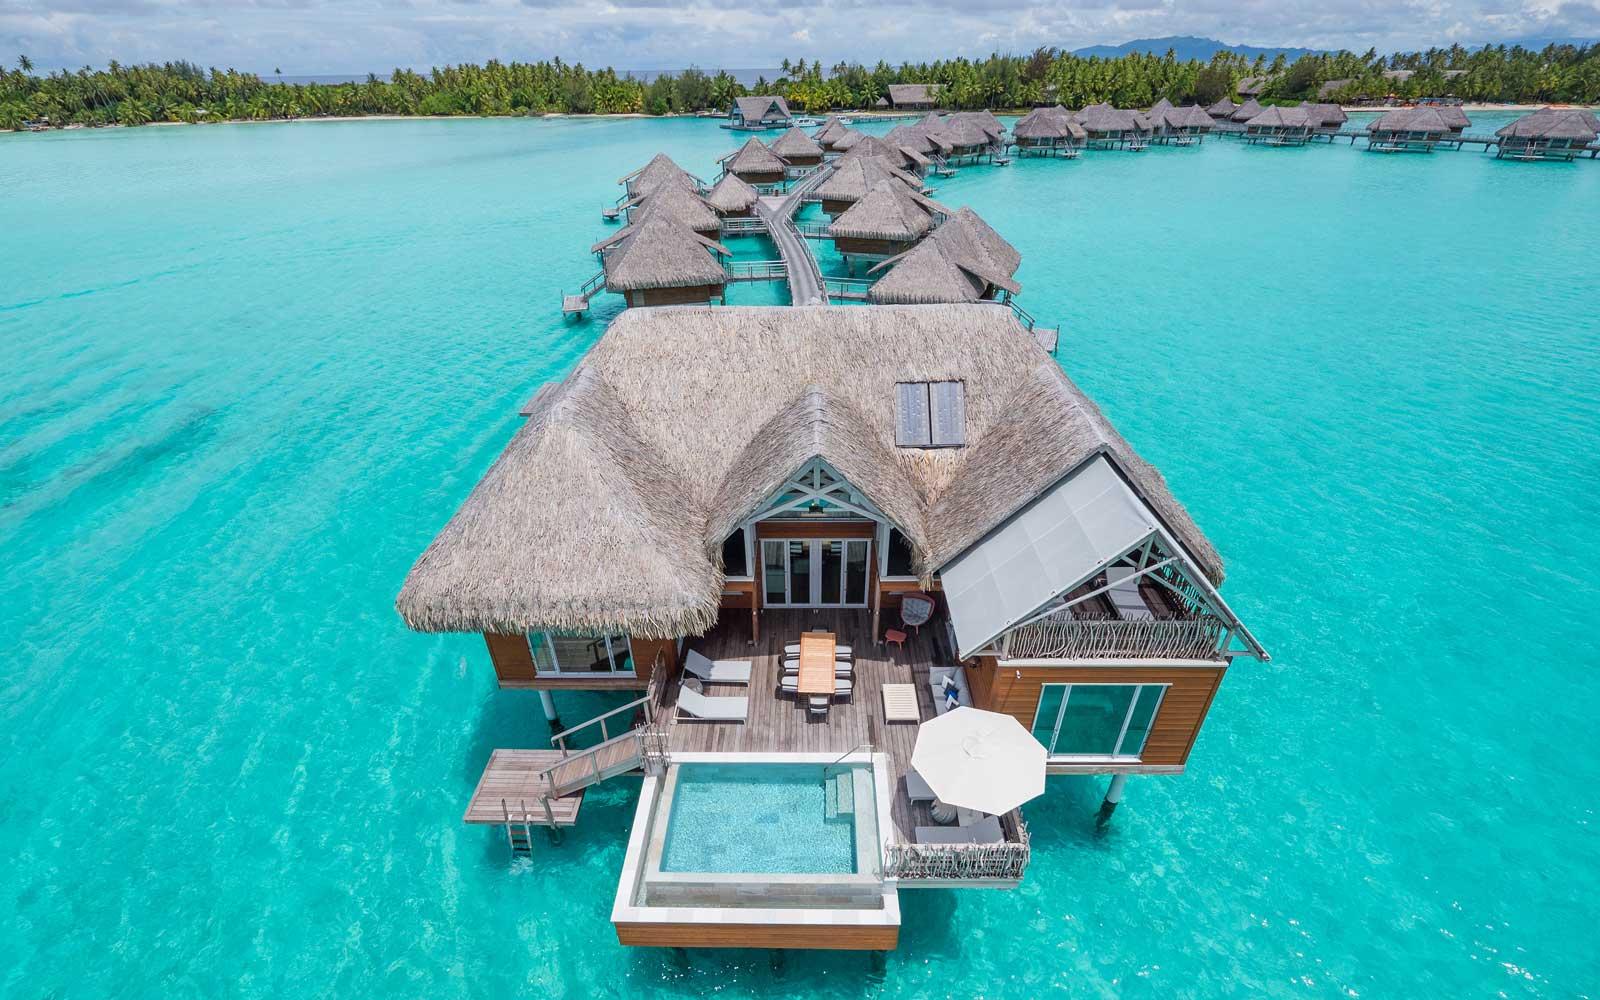 Overview of the InterContinental Bora Bora Resort & Thalasso Spa